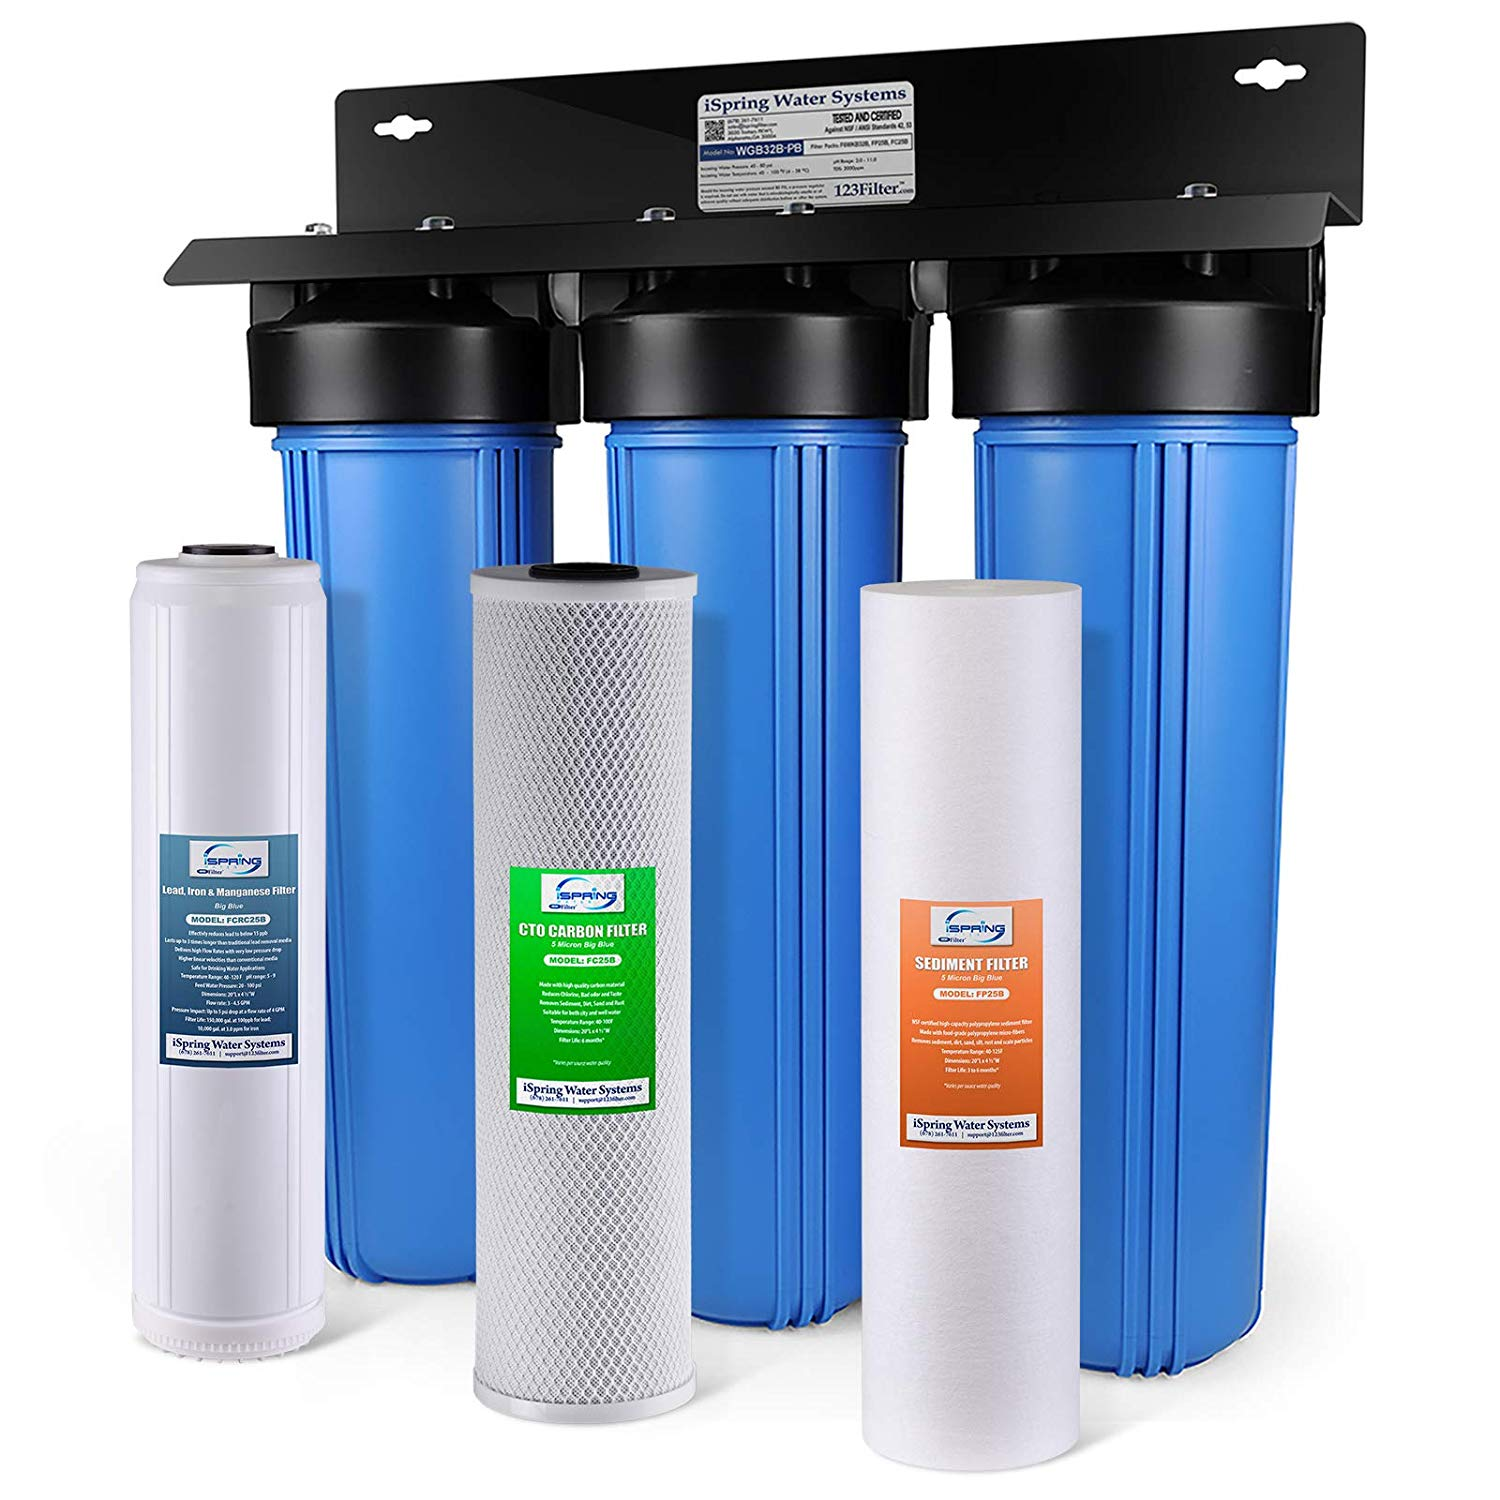 SpringWell Water Filter and Softener